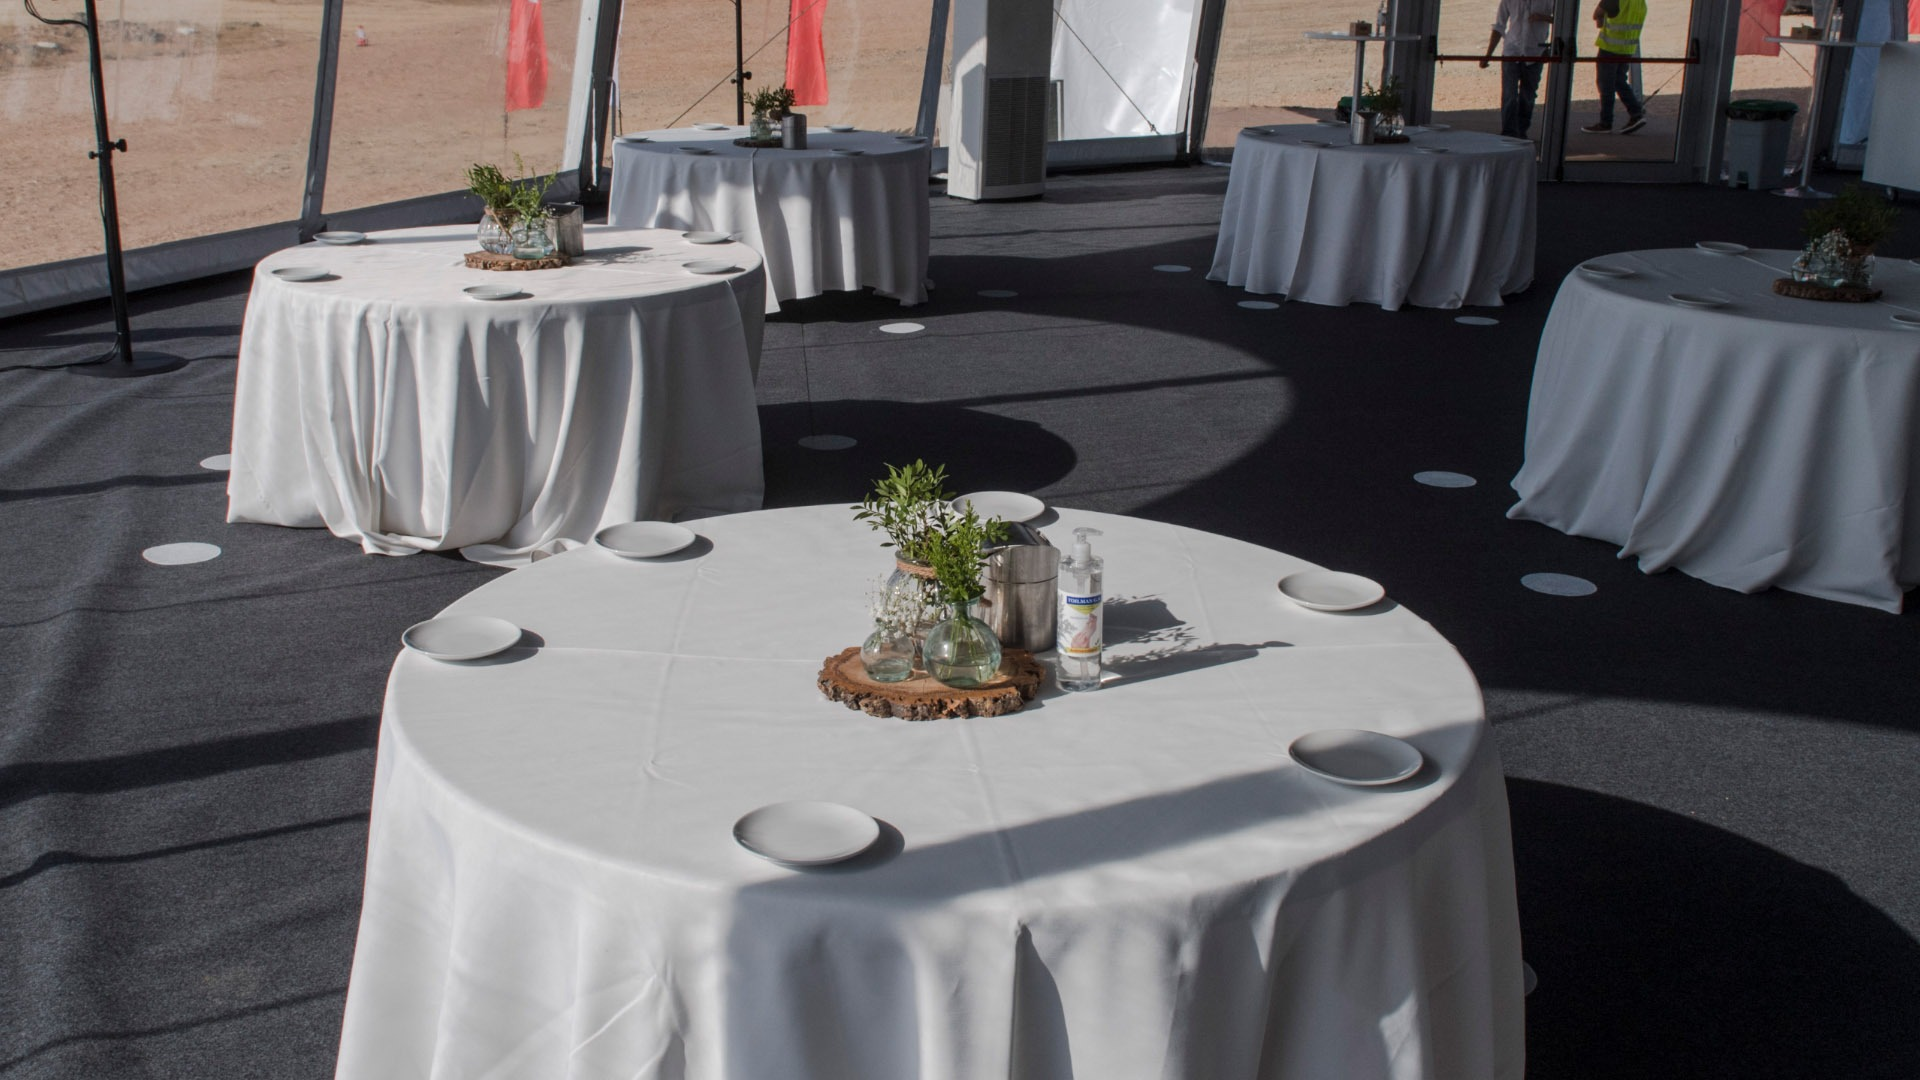 Inauguration of the floating photovoltaic solar plant on the Sierra Brava reservoir (Extremadura). Cocktail area